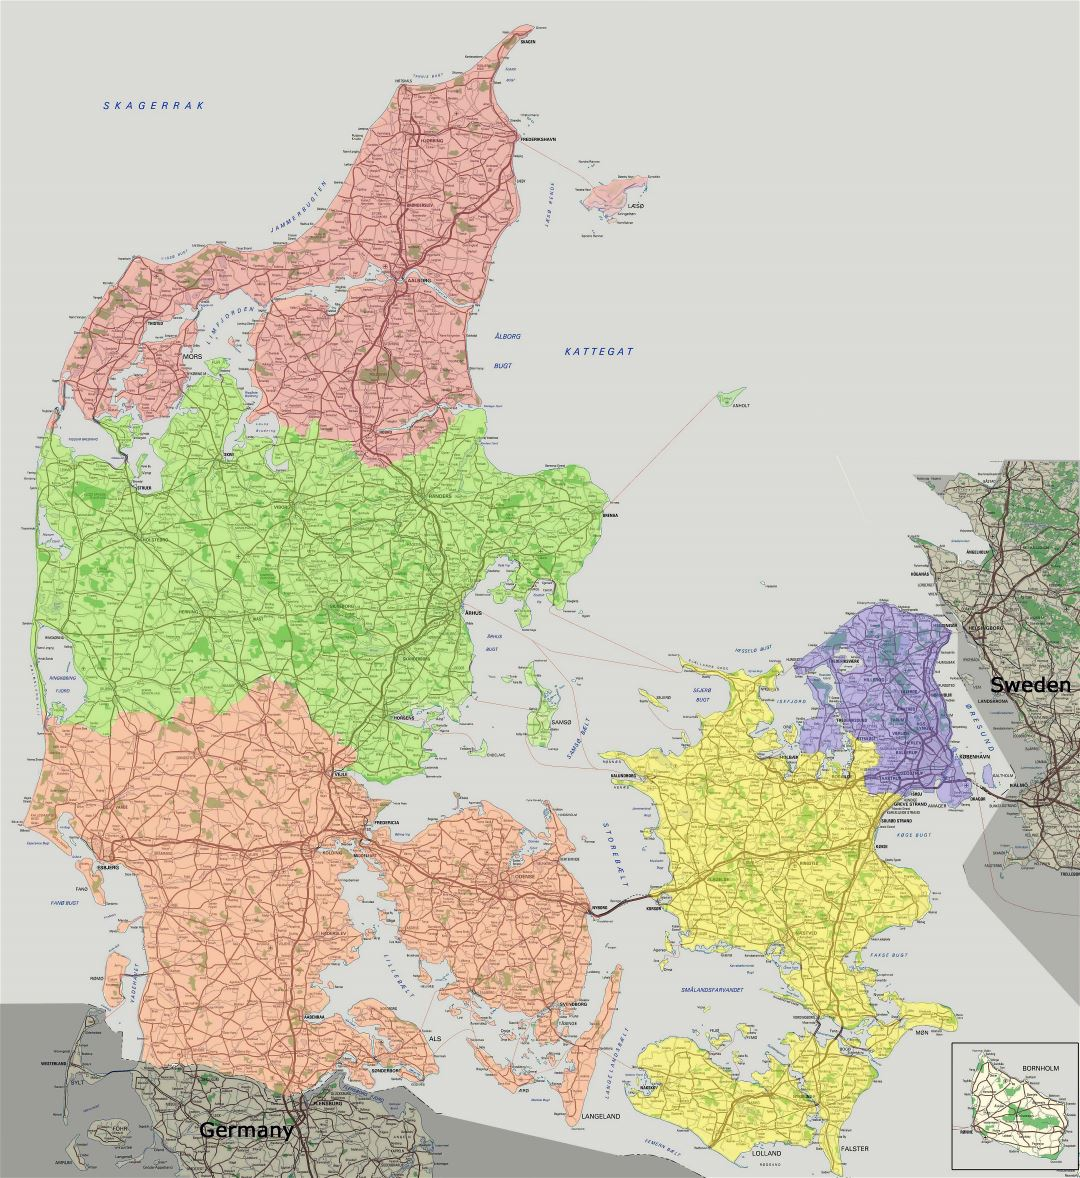 Large scale detailed road map of Denmark with all cities and villages